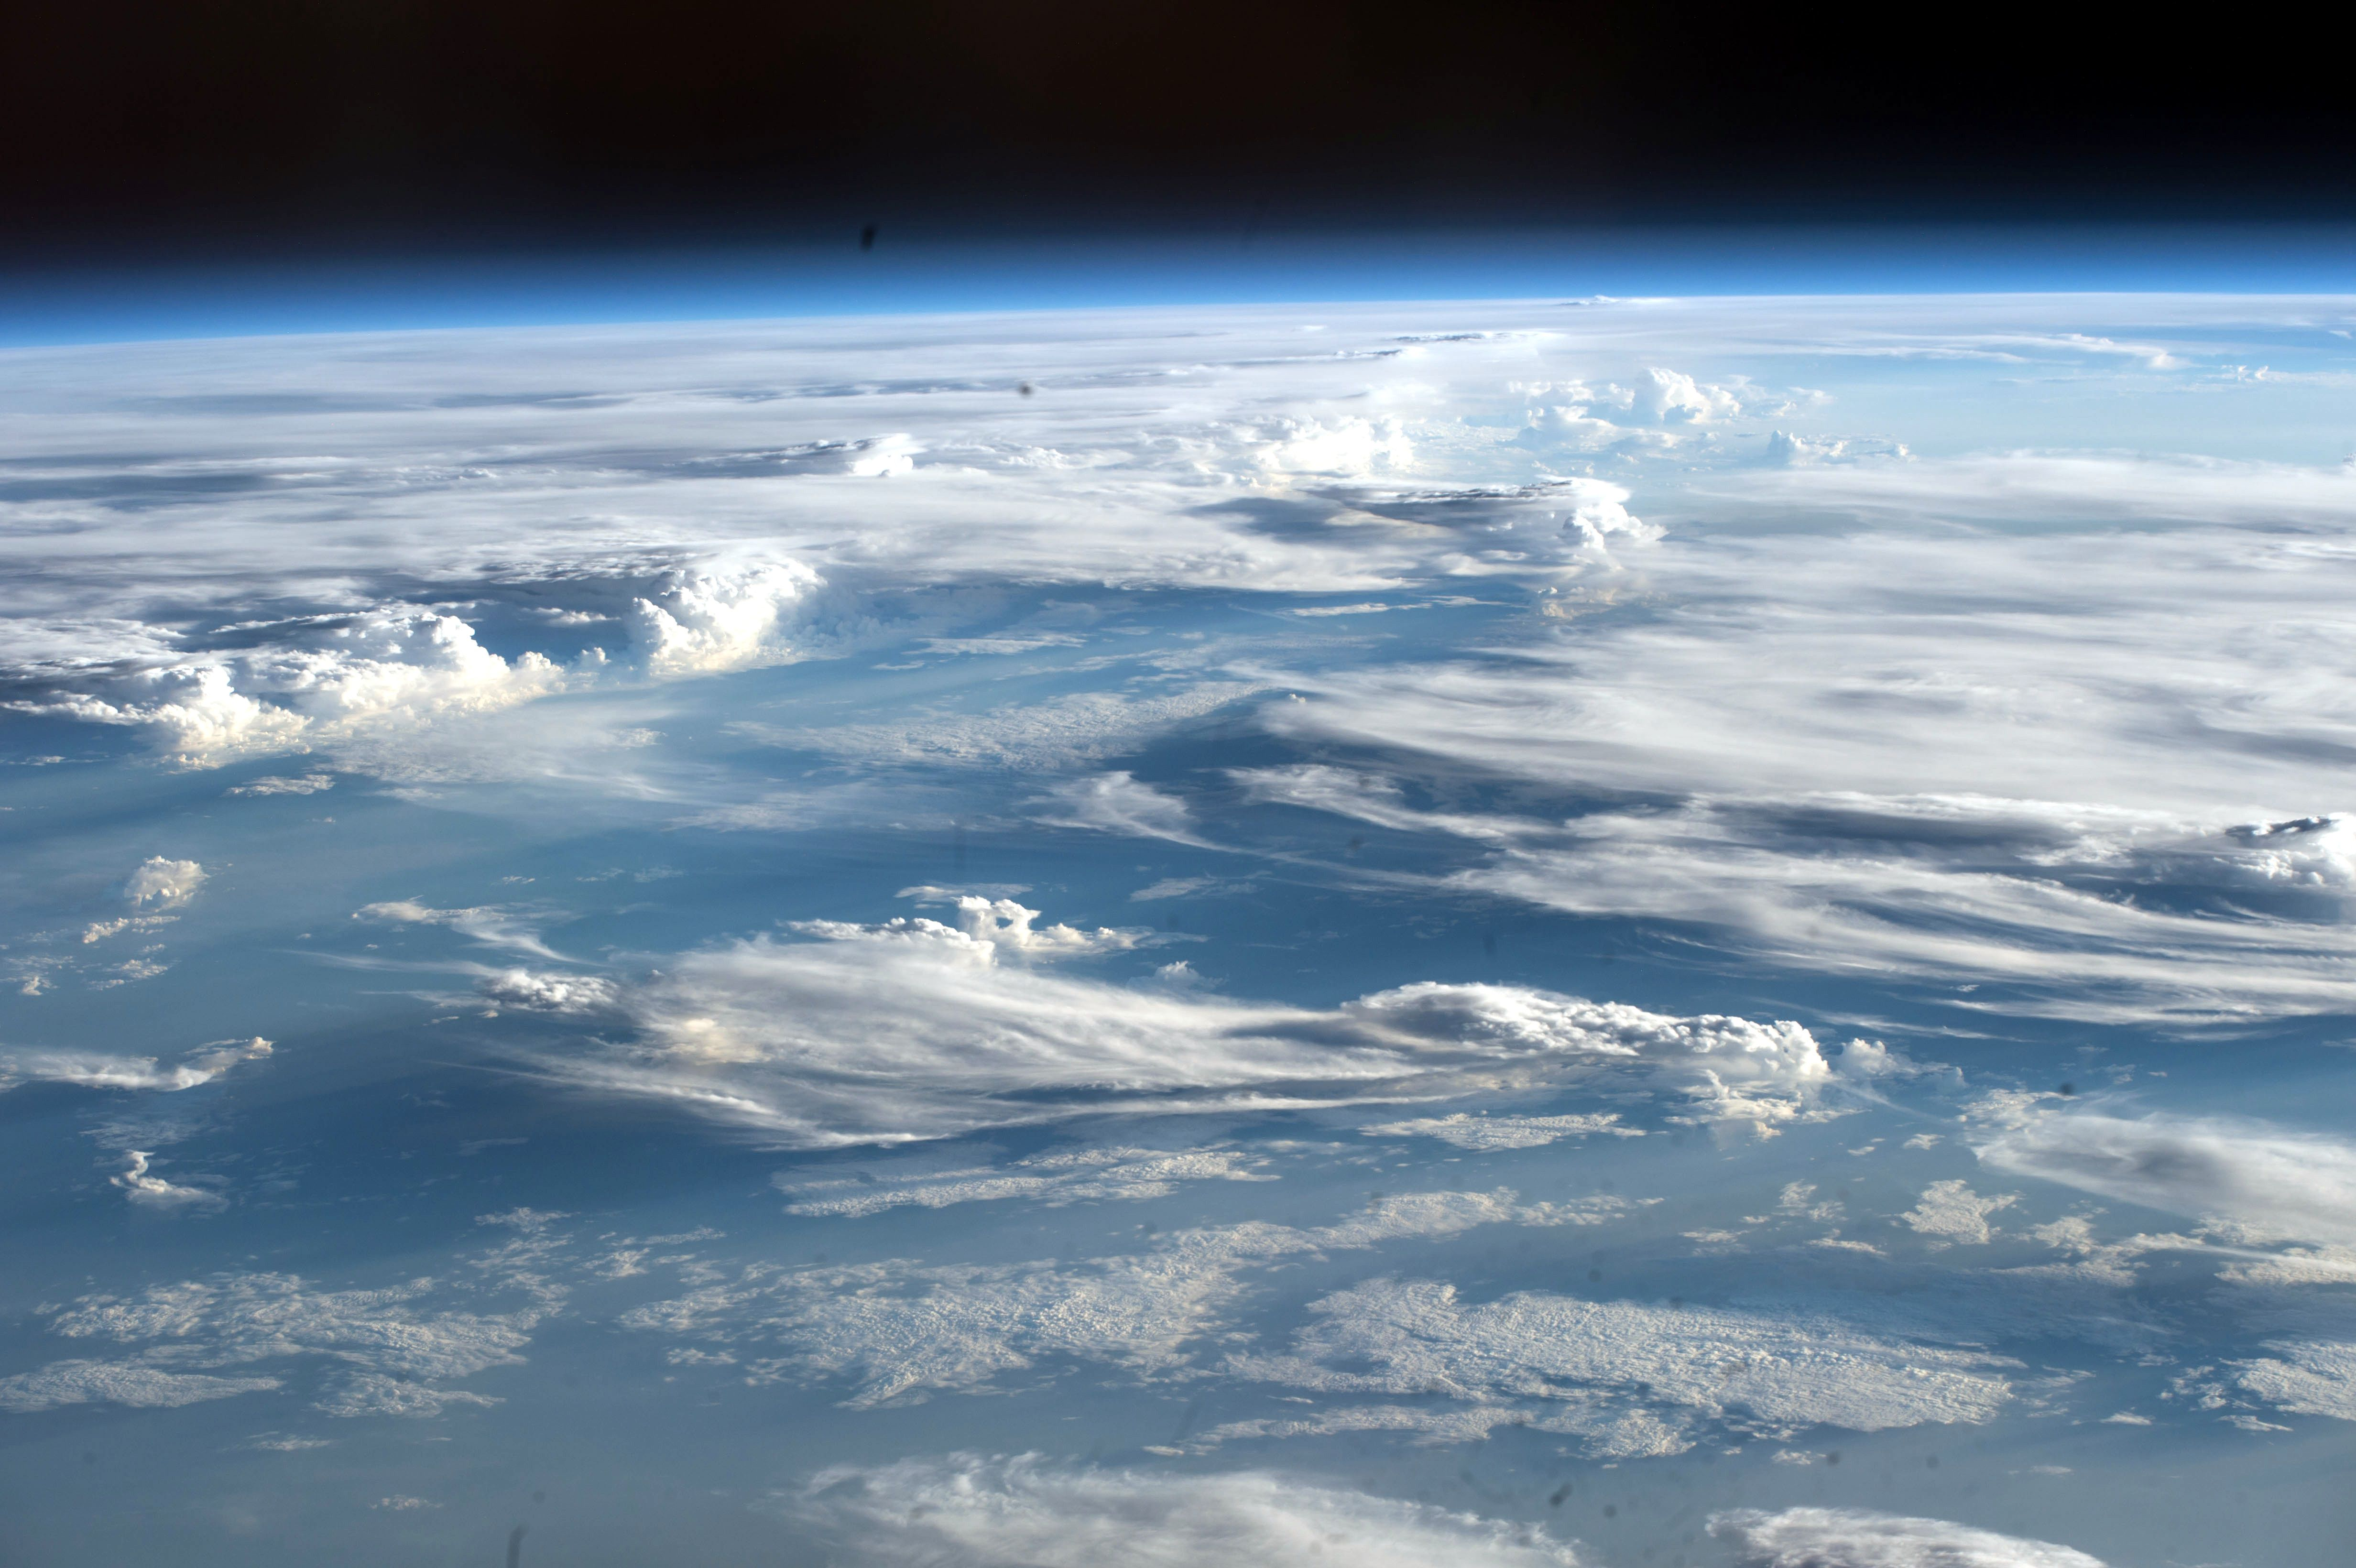 Space Station Crew Sees Lots Of Clouds